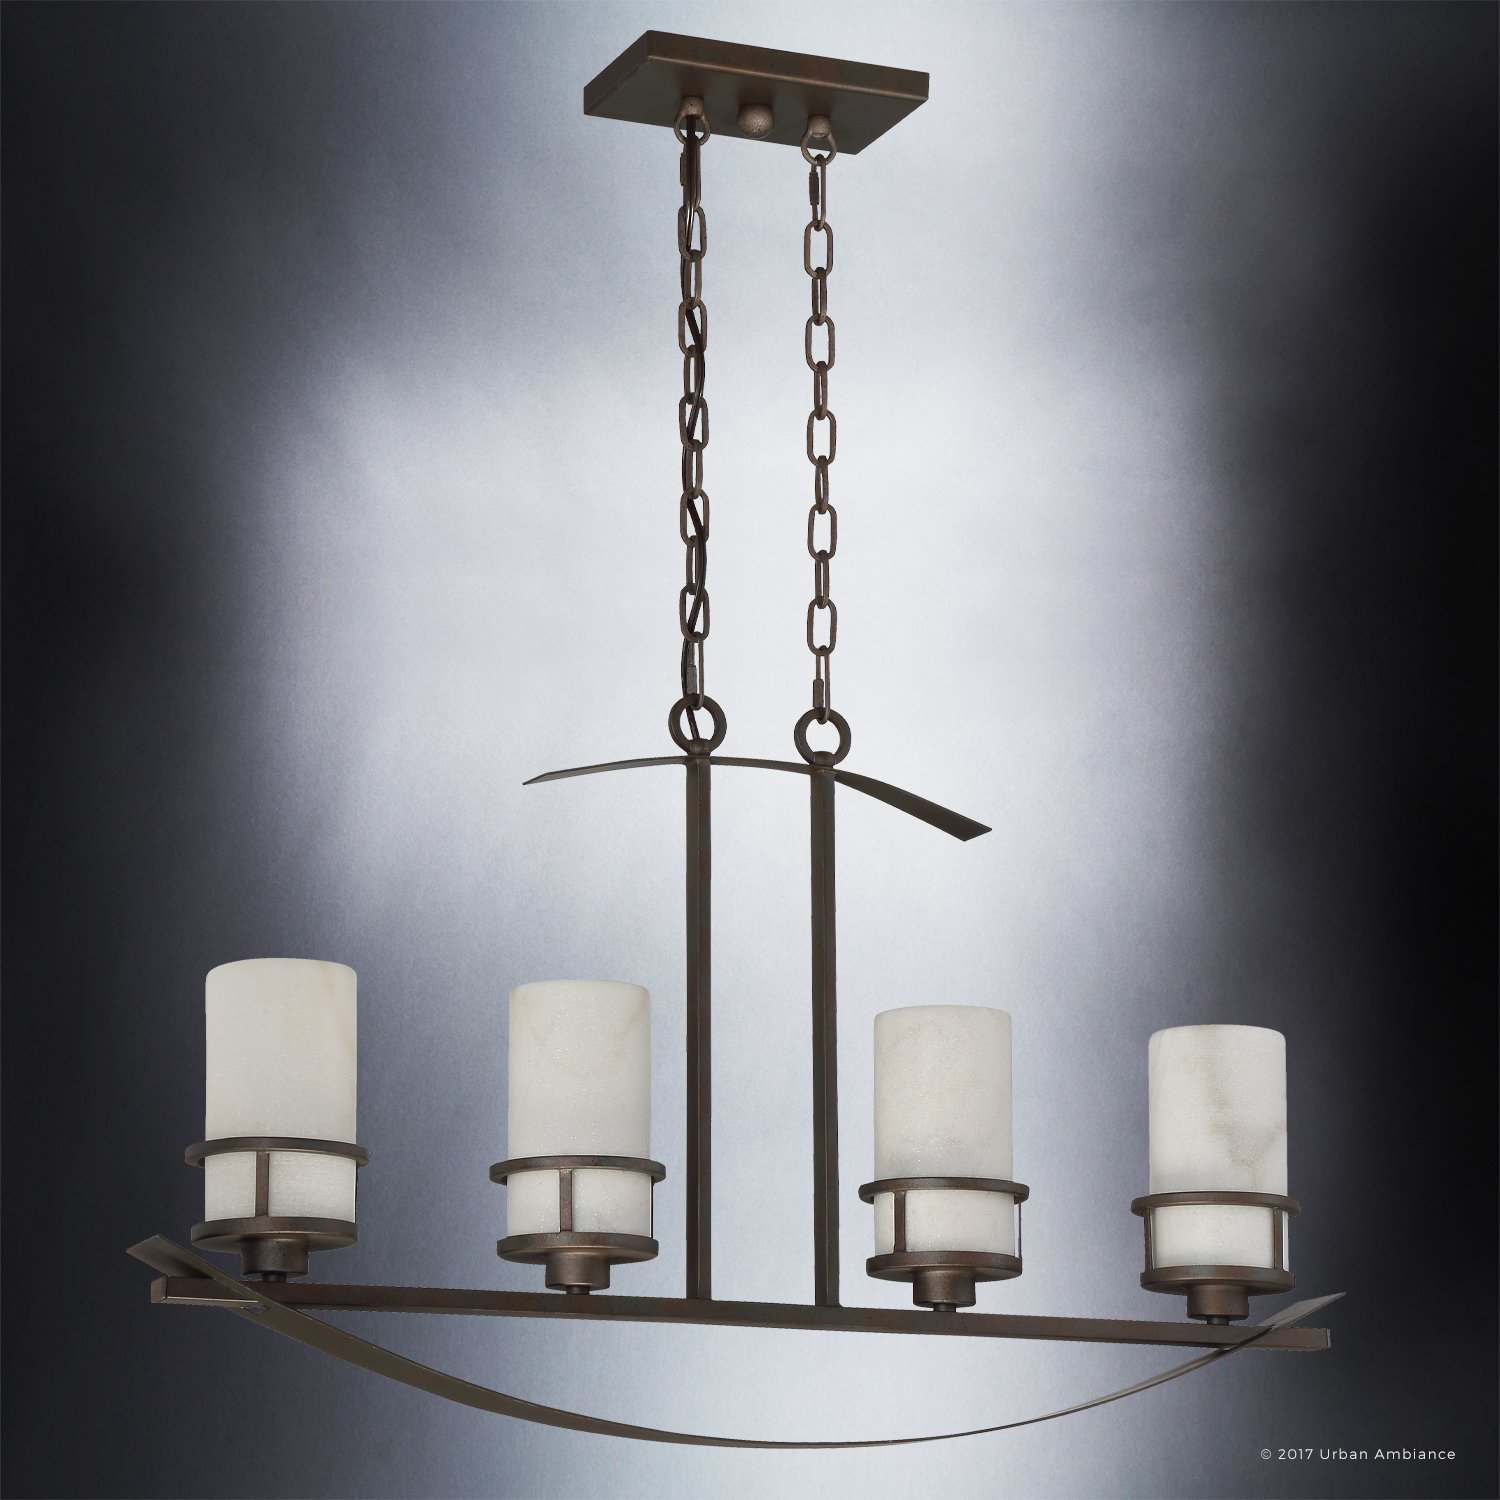 Luxury Rustic Chandelier, Large Size: 18.5''H x 32.5''W, with Craftsman Style Elements, Banded Wrought Iron Design, Forged Iron Finish and White Onyx Stone Shades, UQL2415 by Urban Ambiance by Urban Ambiance (Image #4)